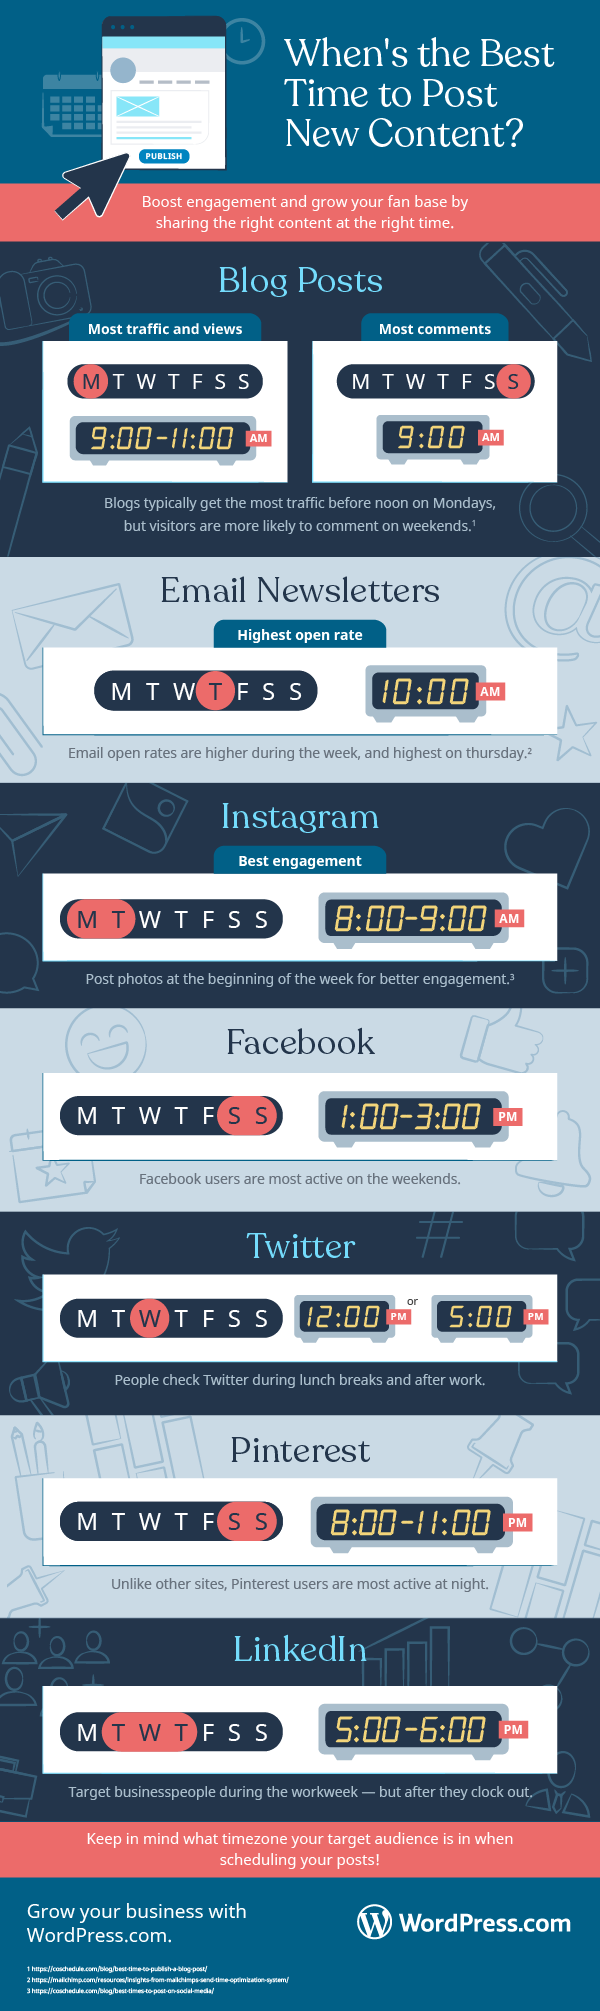 WordPress infographic best time to post